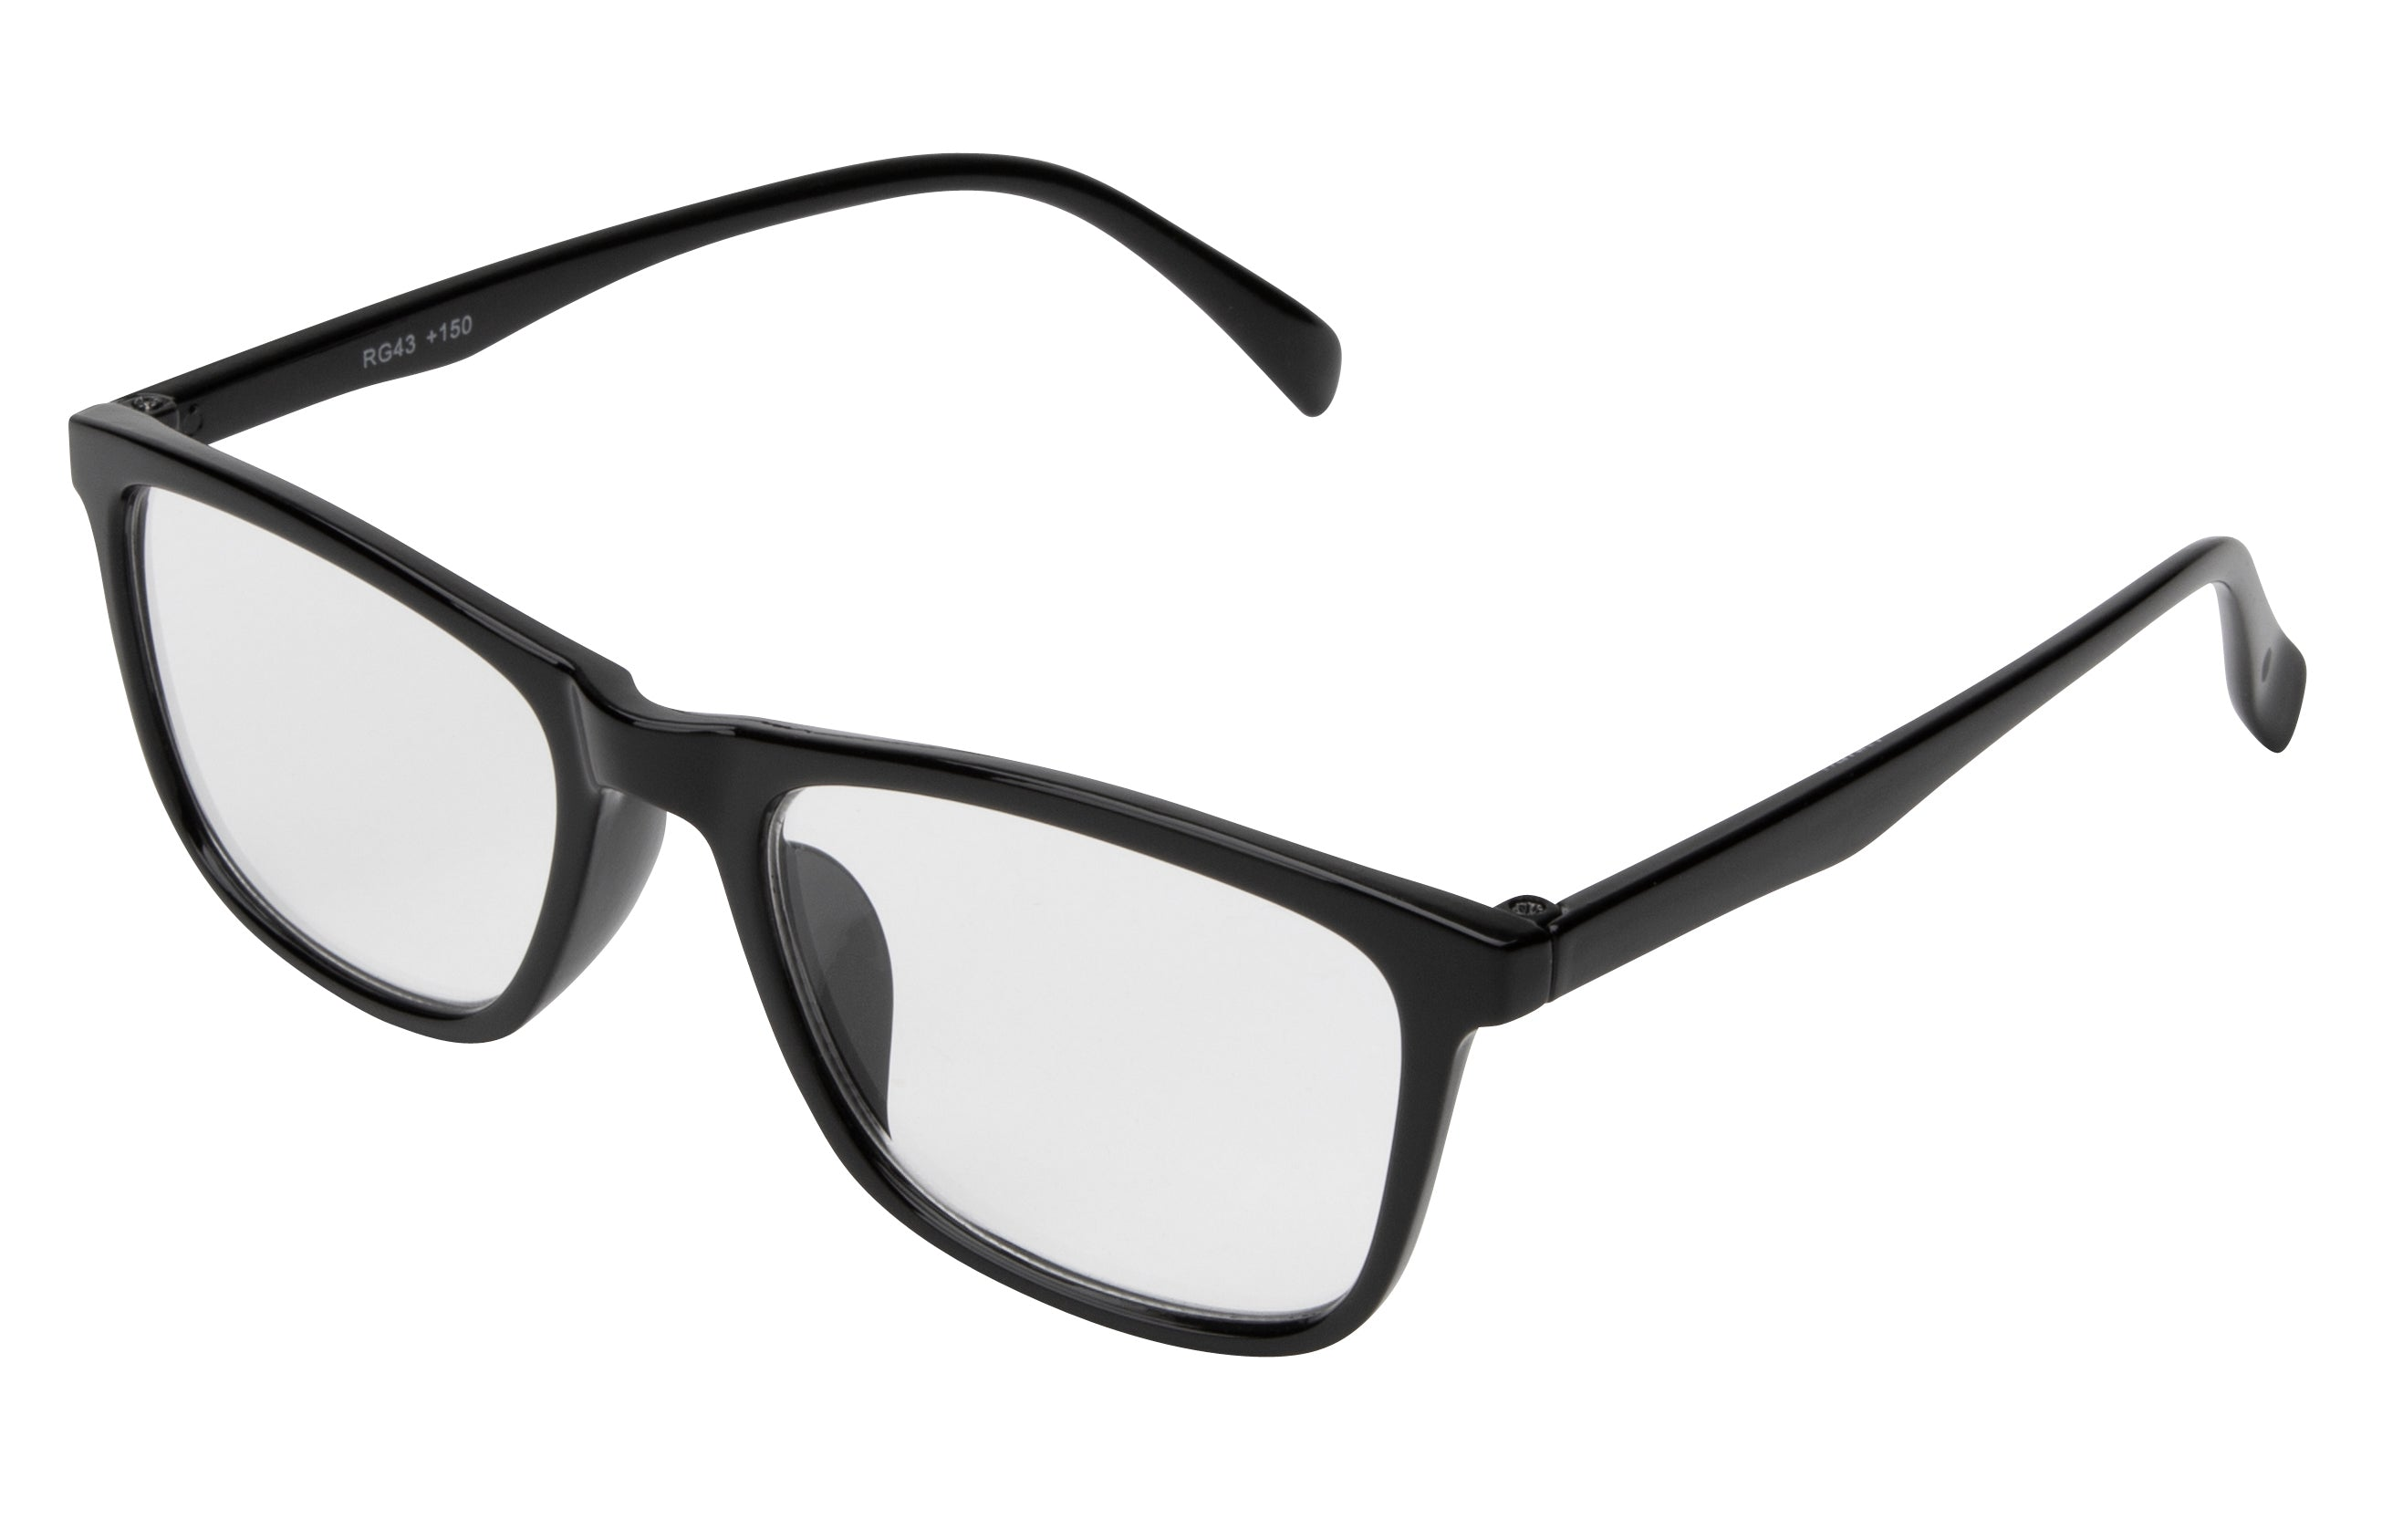 RG43 - Reading Glasses Assorted Powers